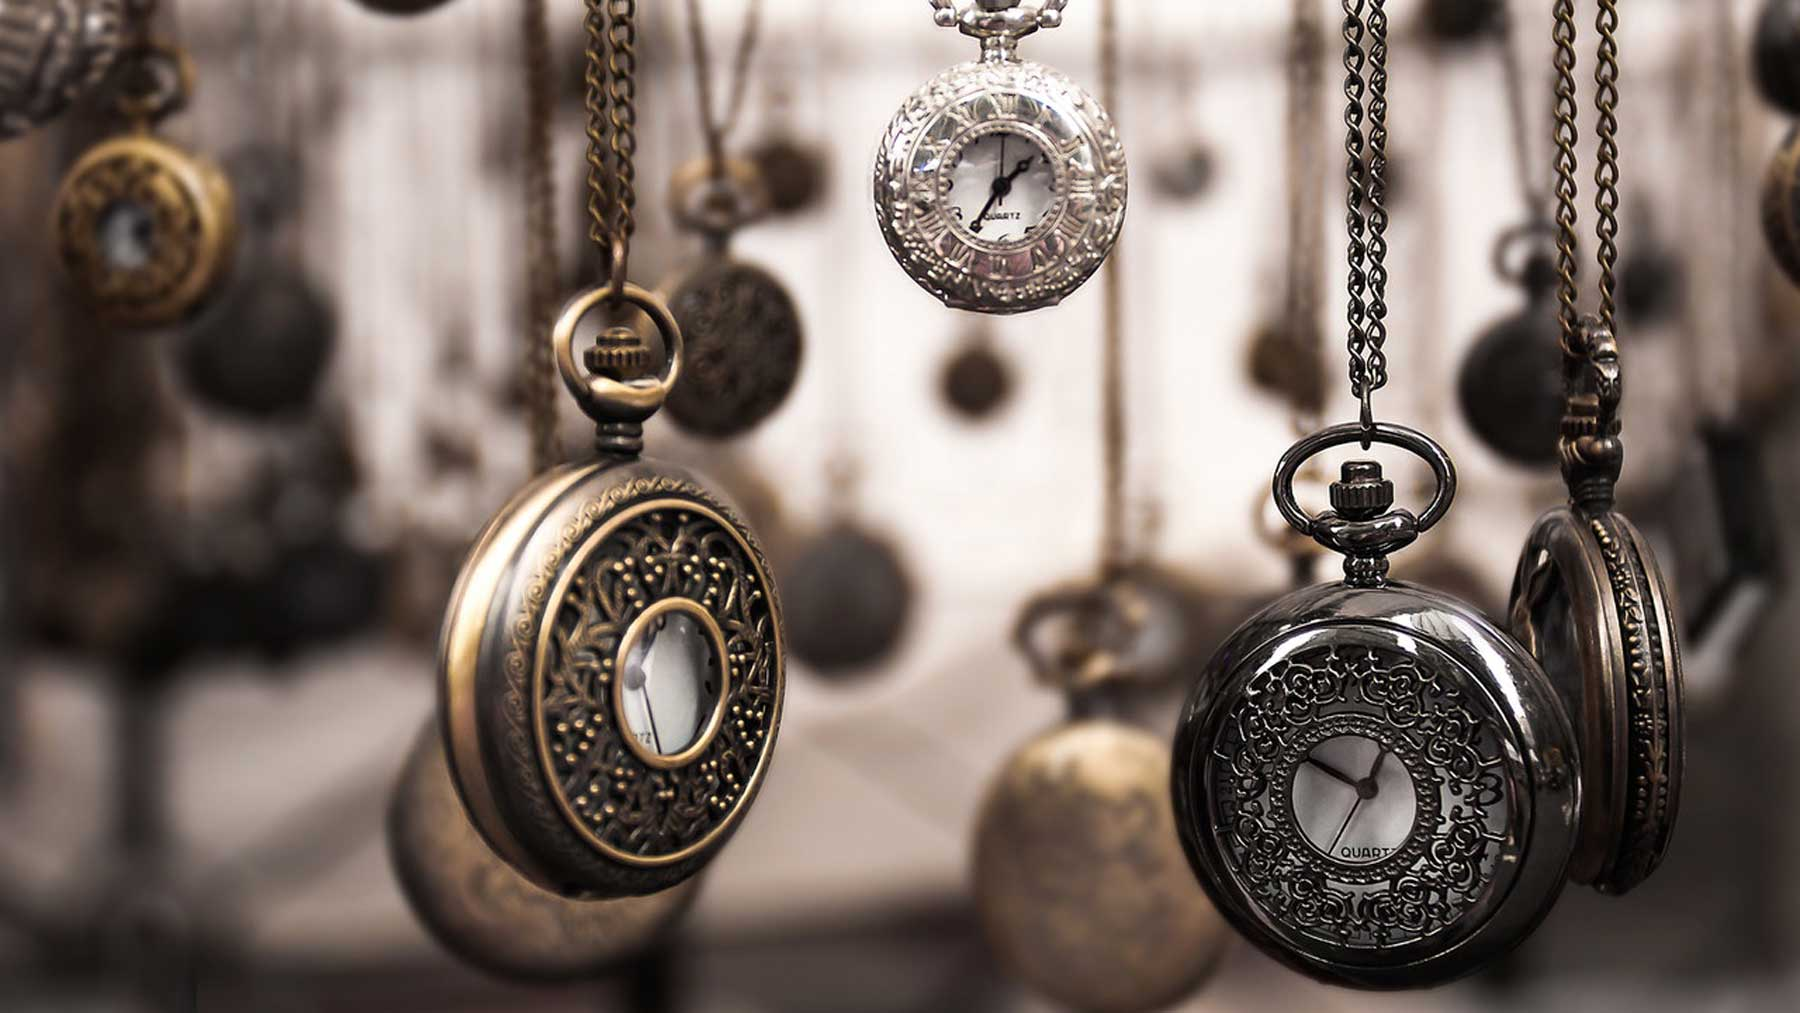 old-fashioned watches on chains hanging down to signify time